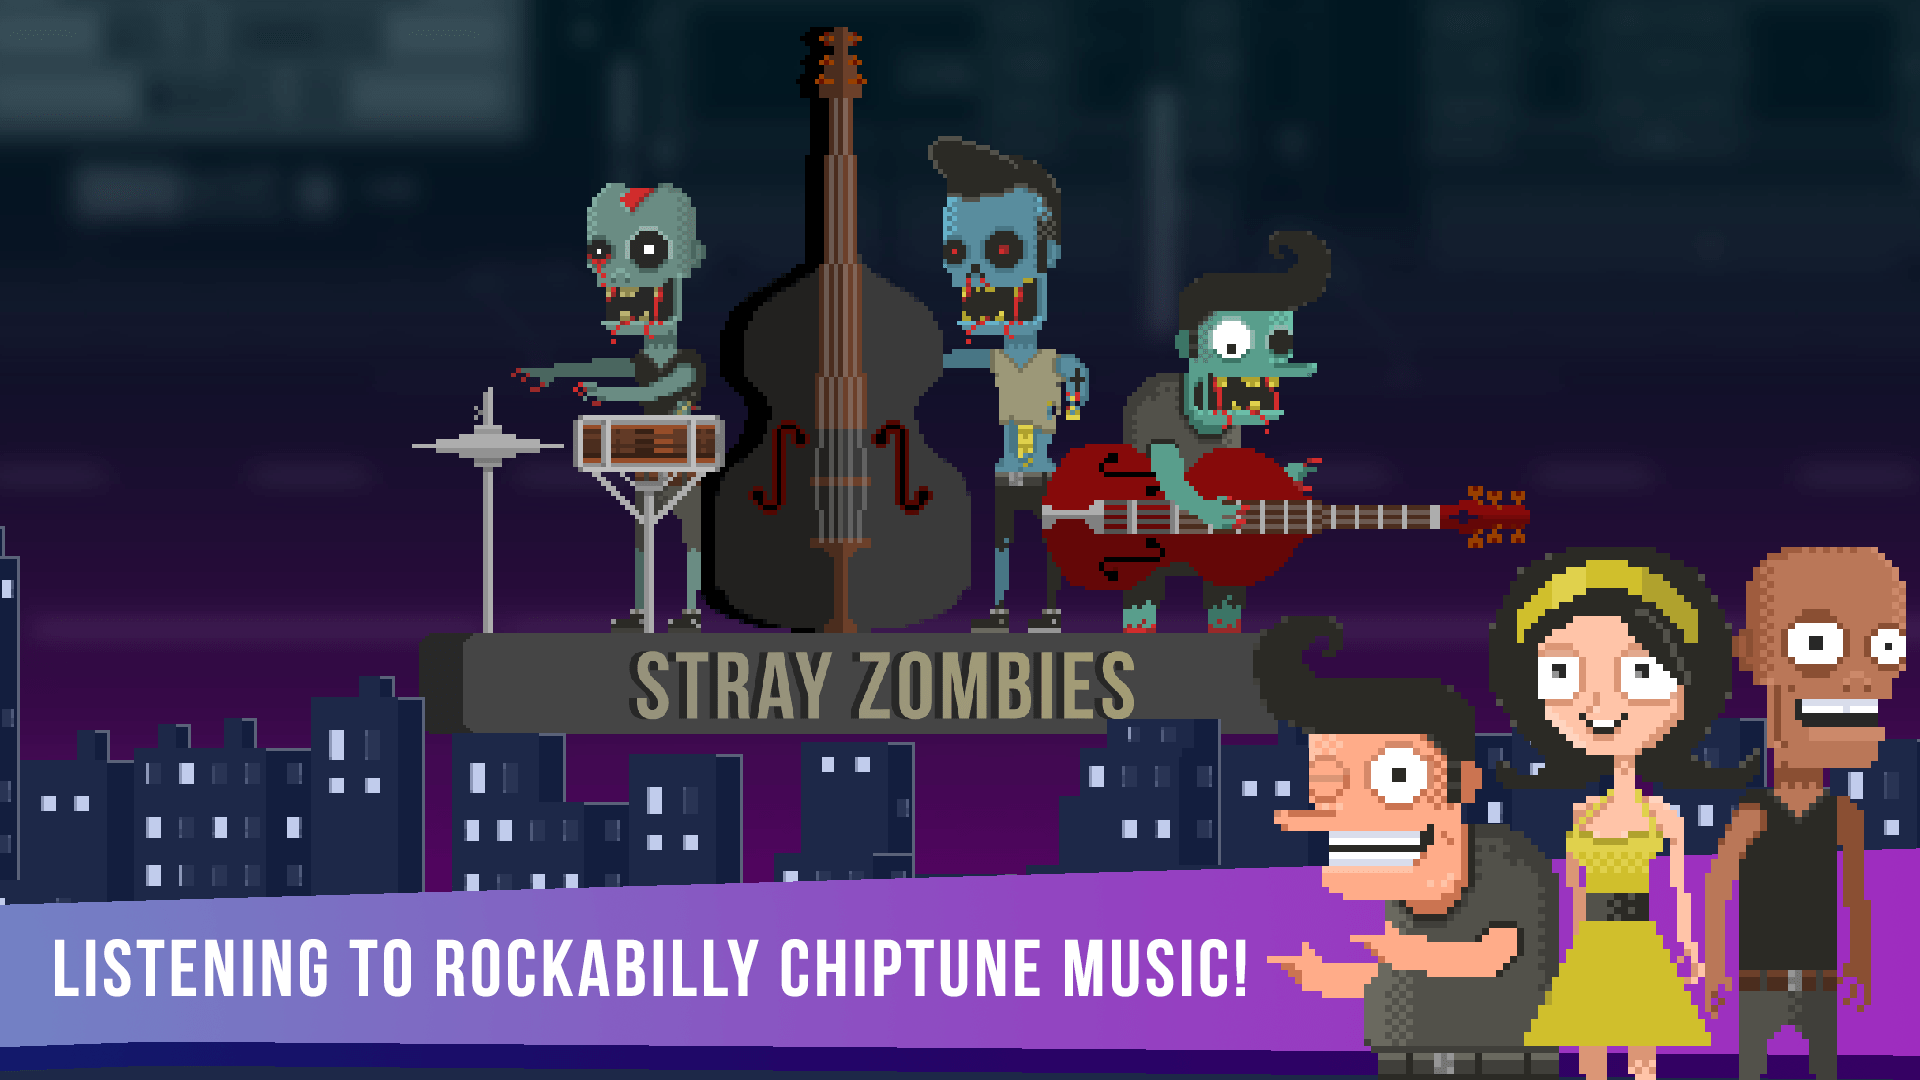 Chiptune and Rockabilly for Drop Dead Twice